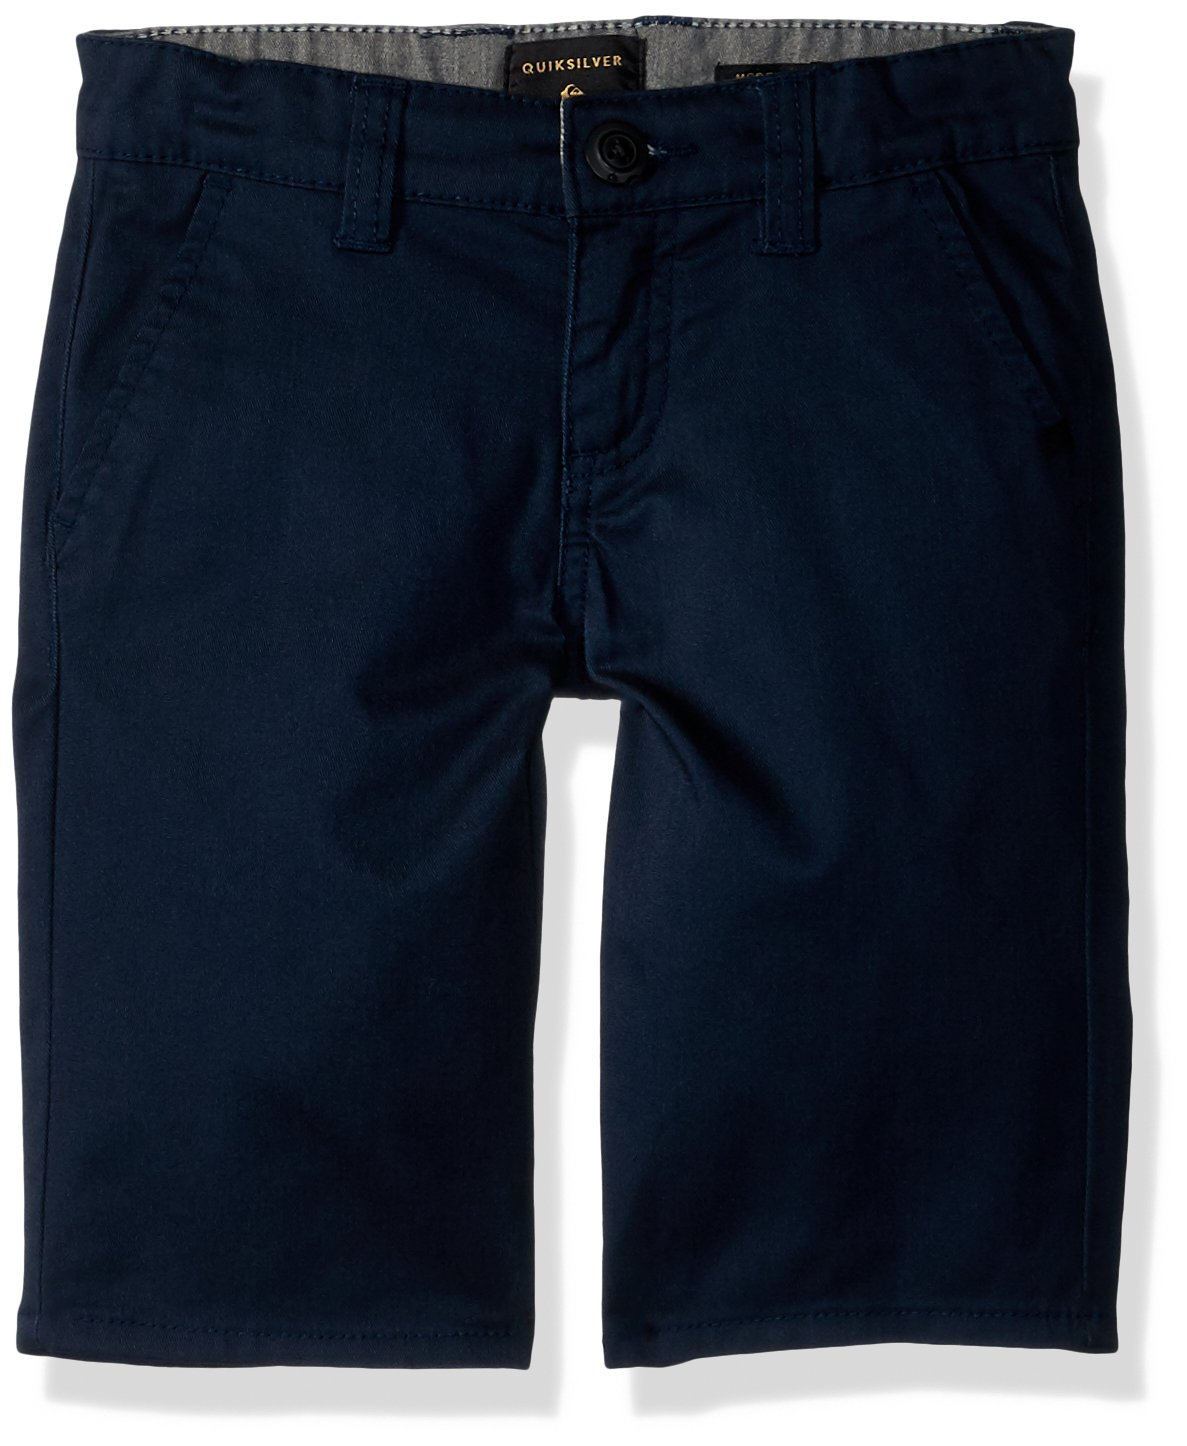 Quiksilver Boys' Little Kid Everyday Union Stretch Shorts, Navy Blazer, 4 by Quiksilver (Image #1)